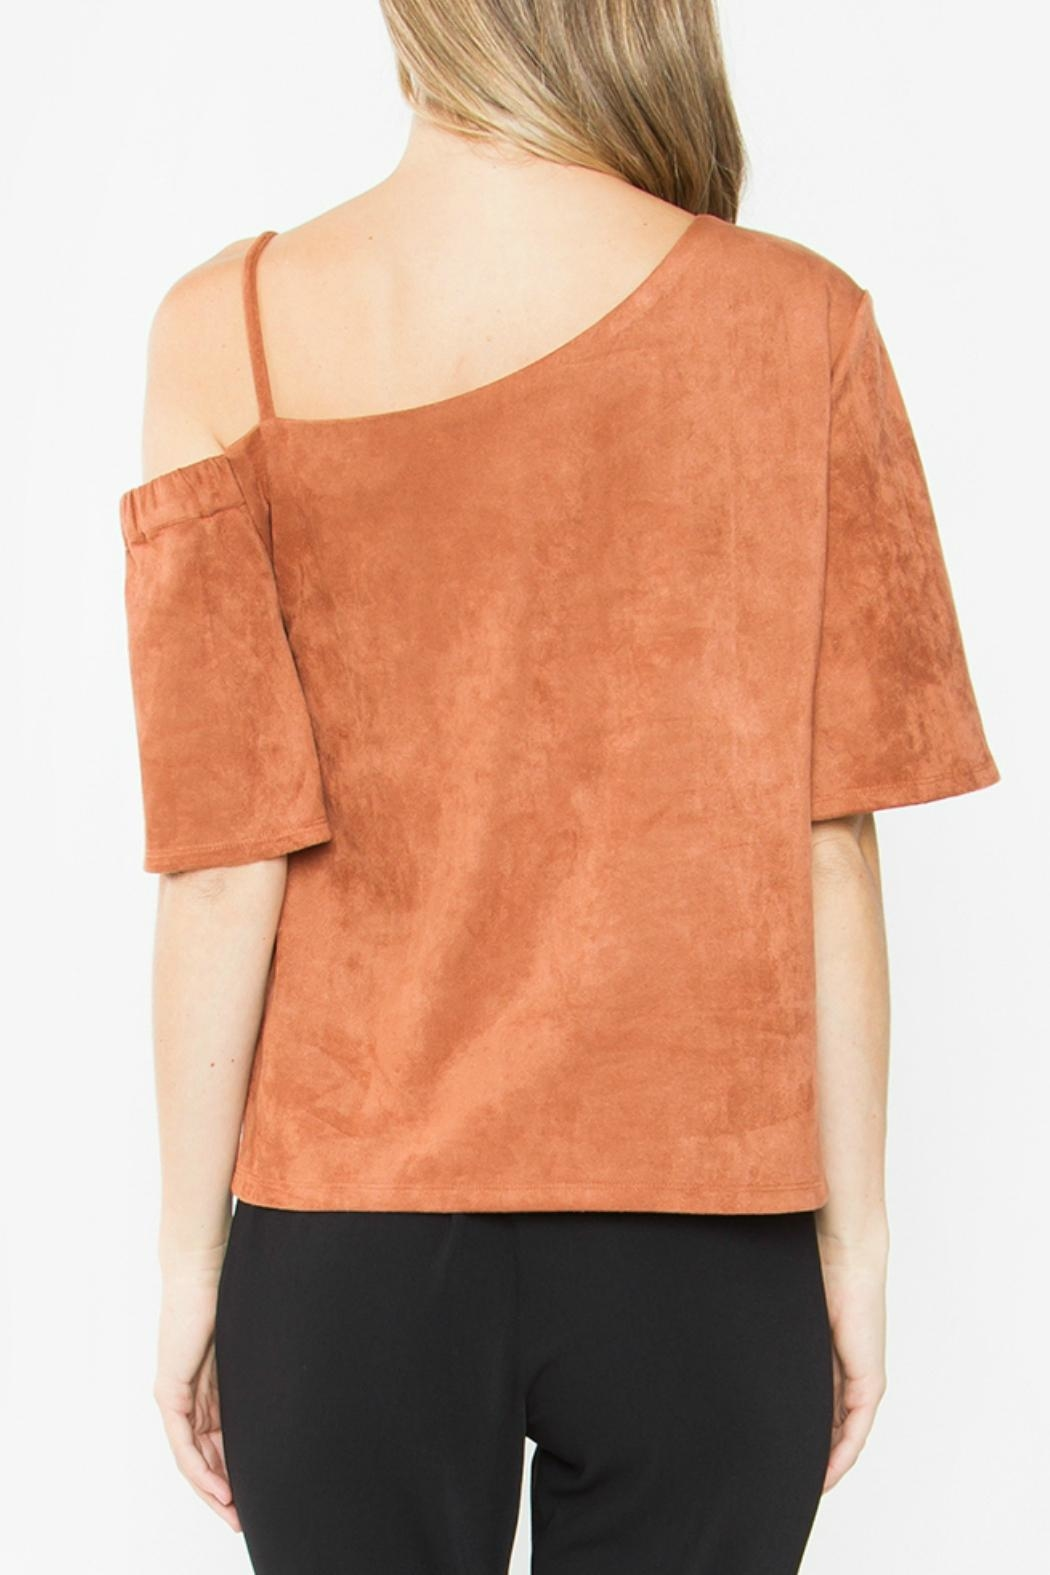 Sugar Lips Abiline Suede Top - Side Cropped Image